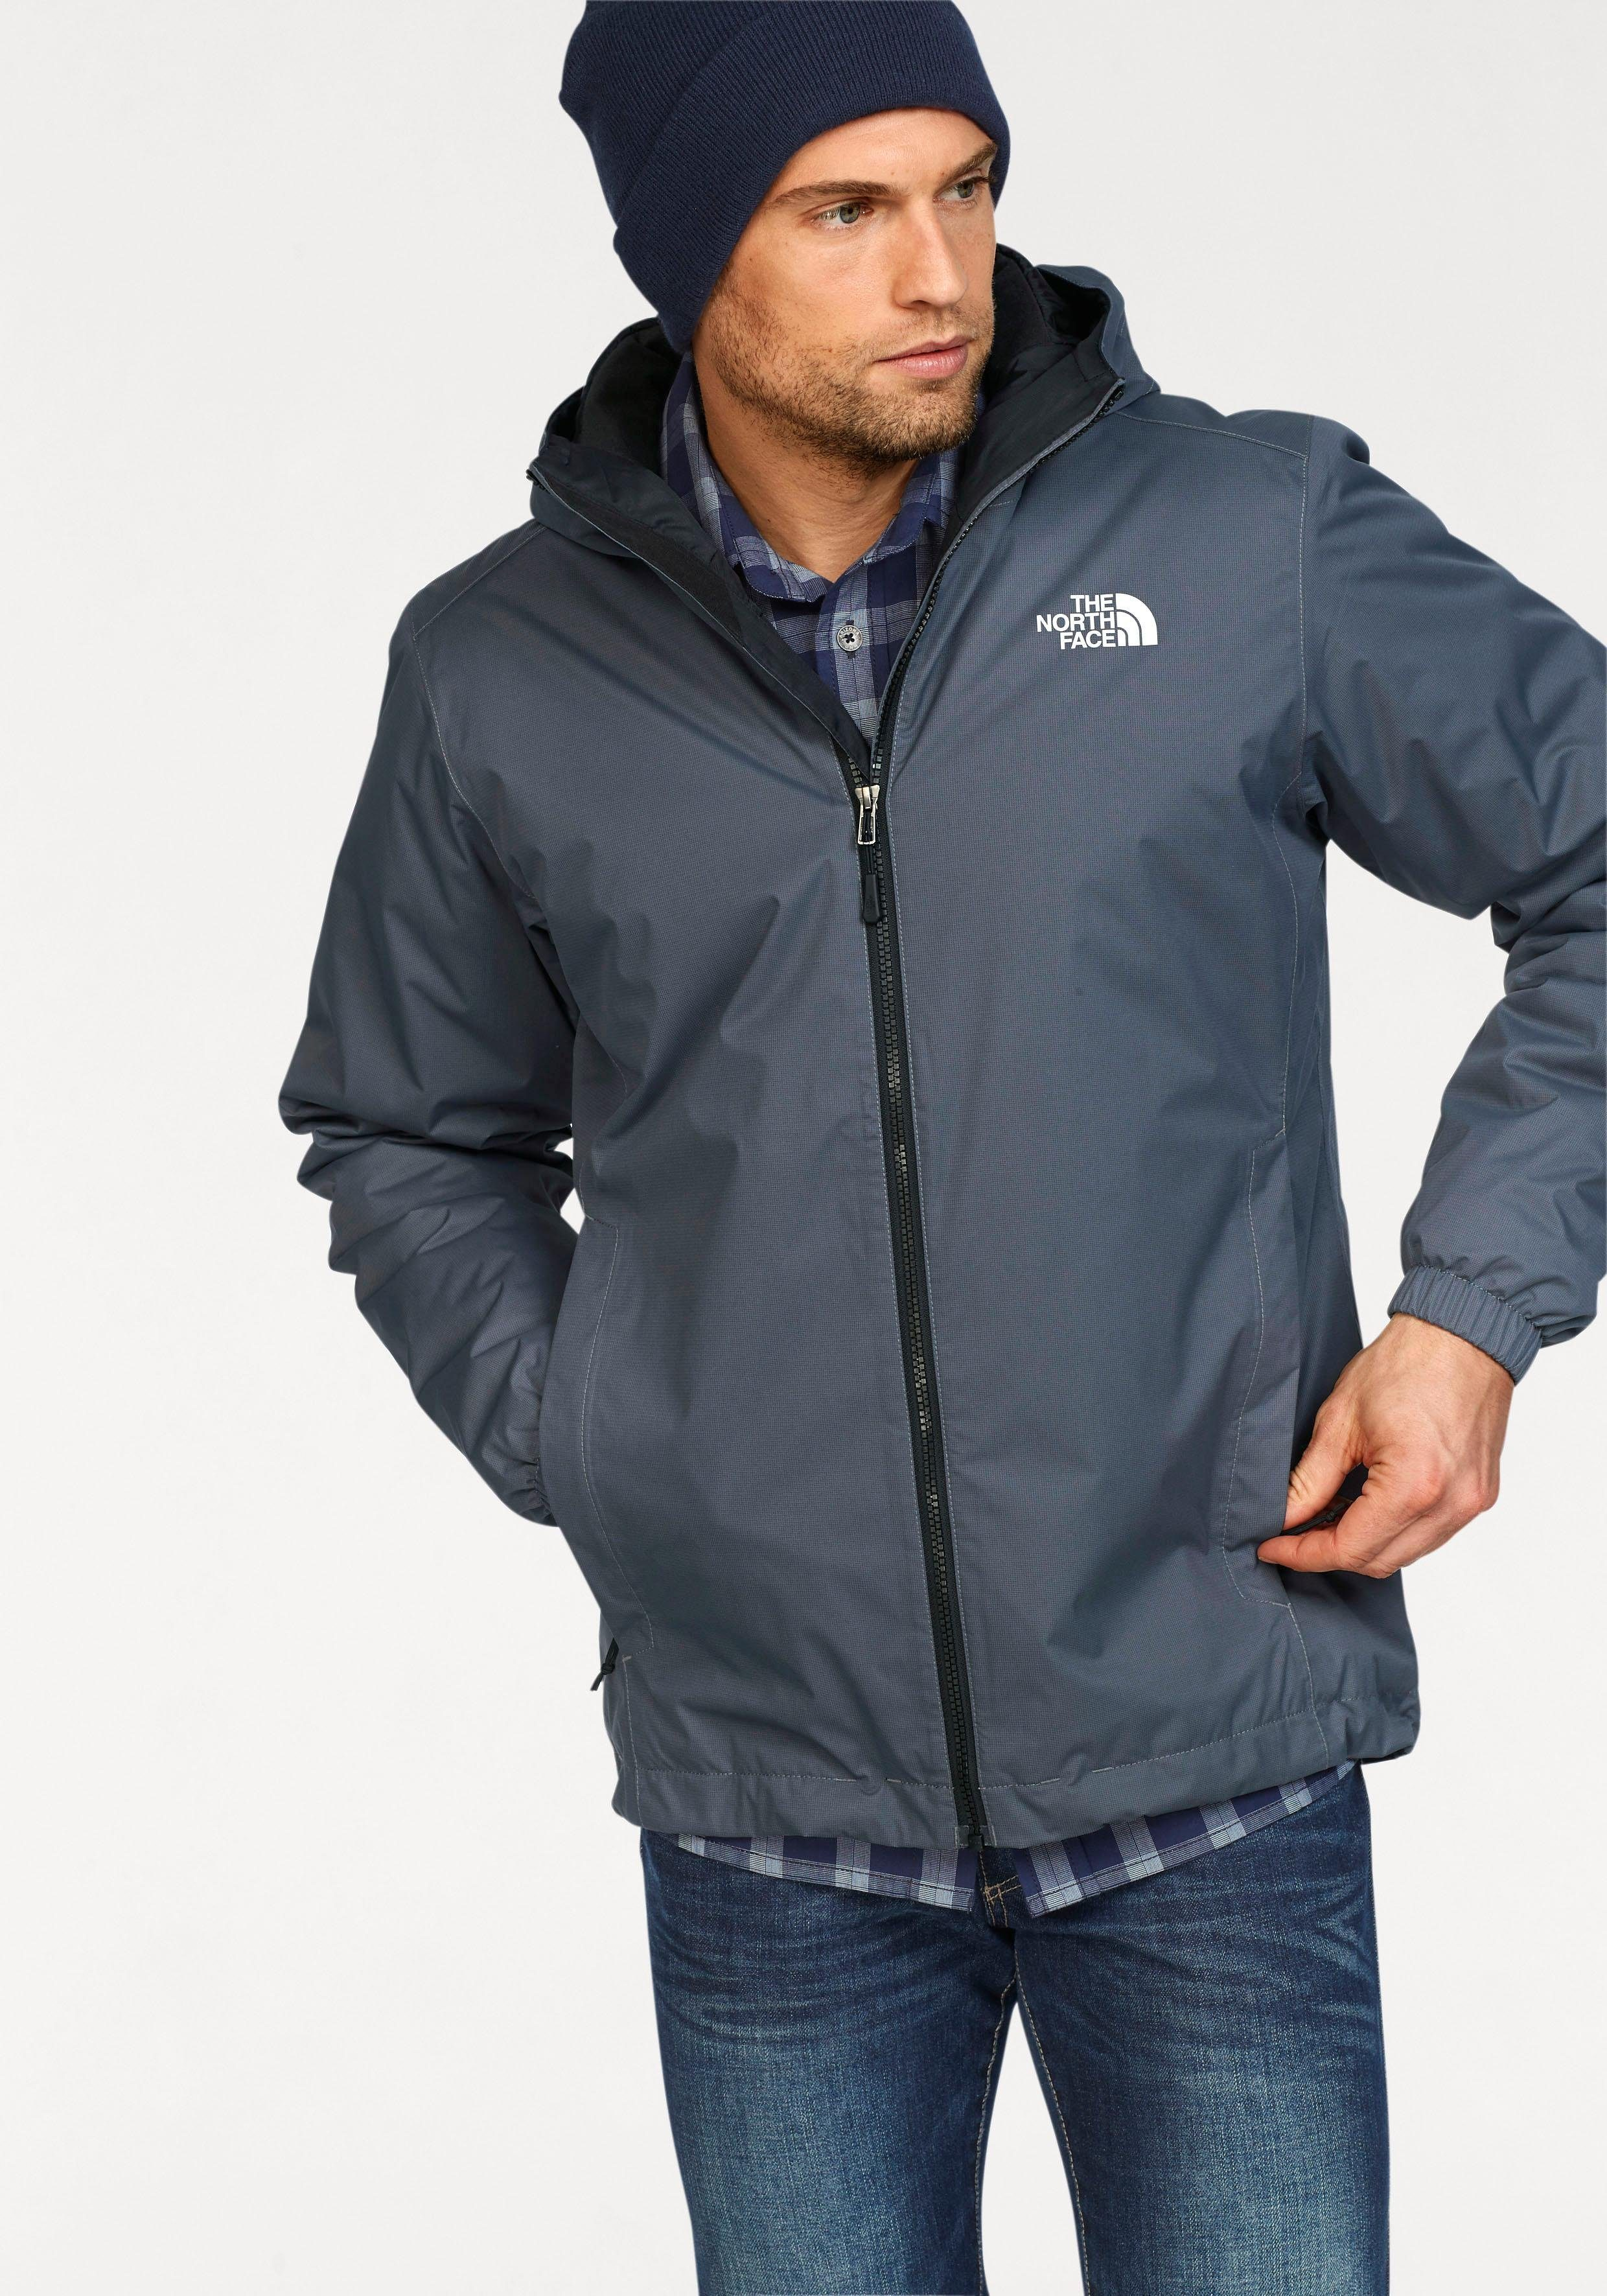 Insulated« The Funktionsjacke »quest Face North fxPxwgqI